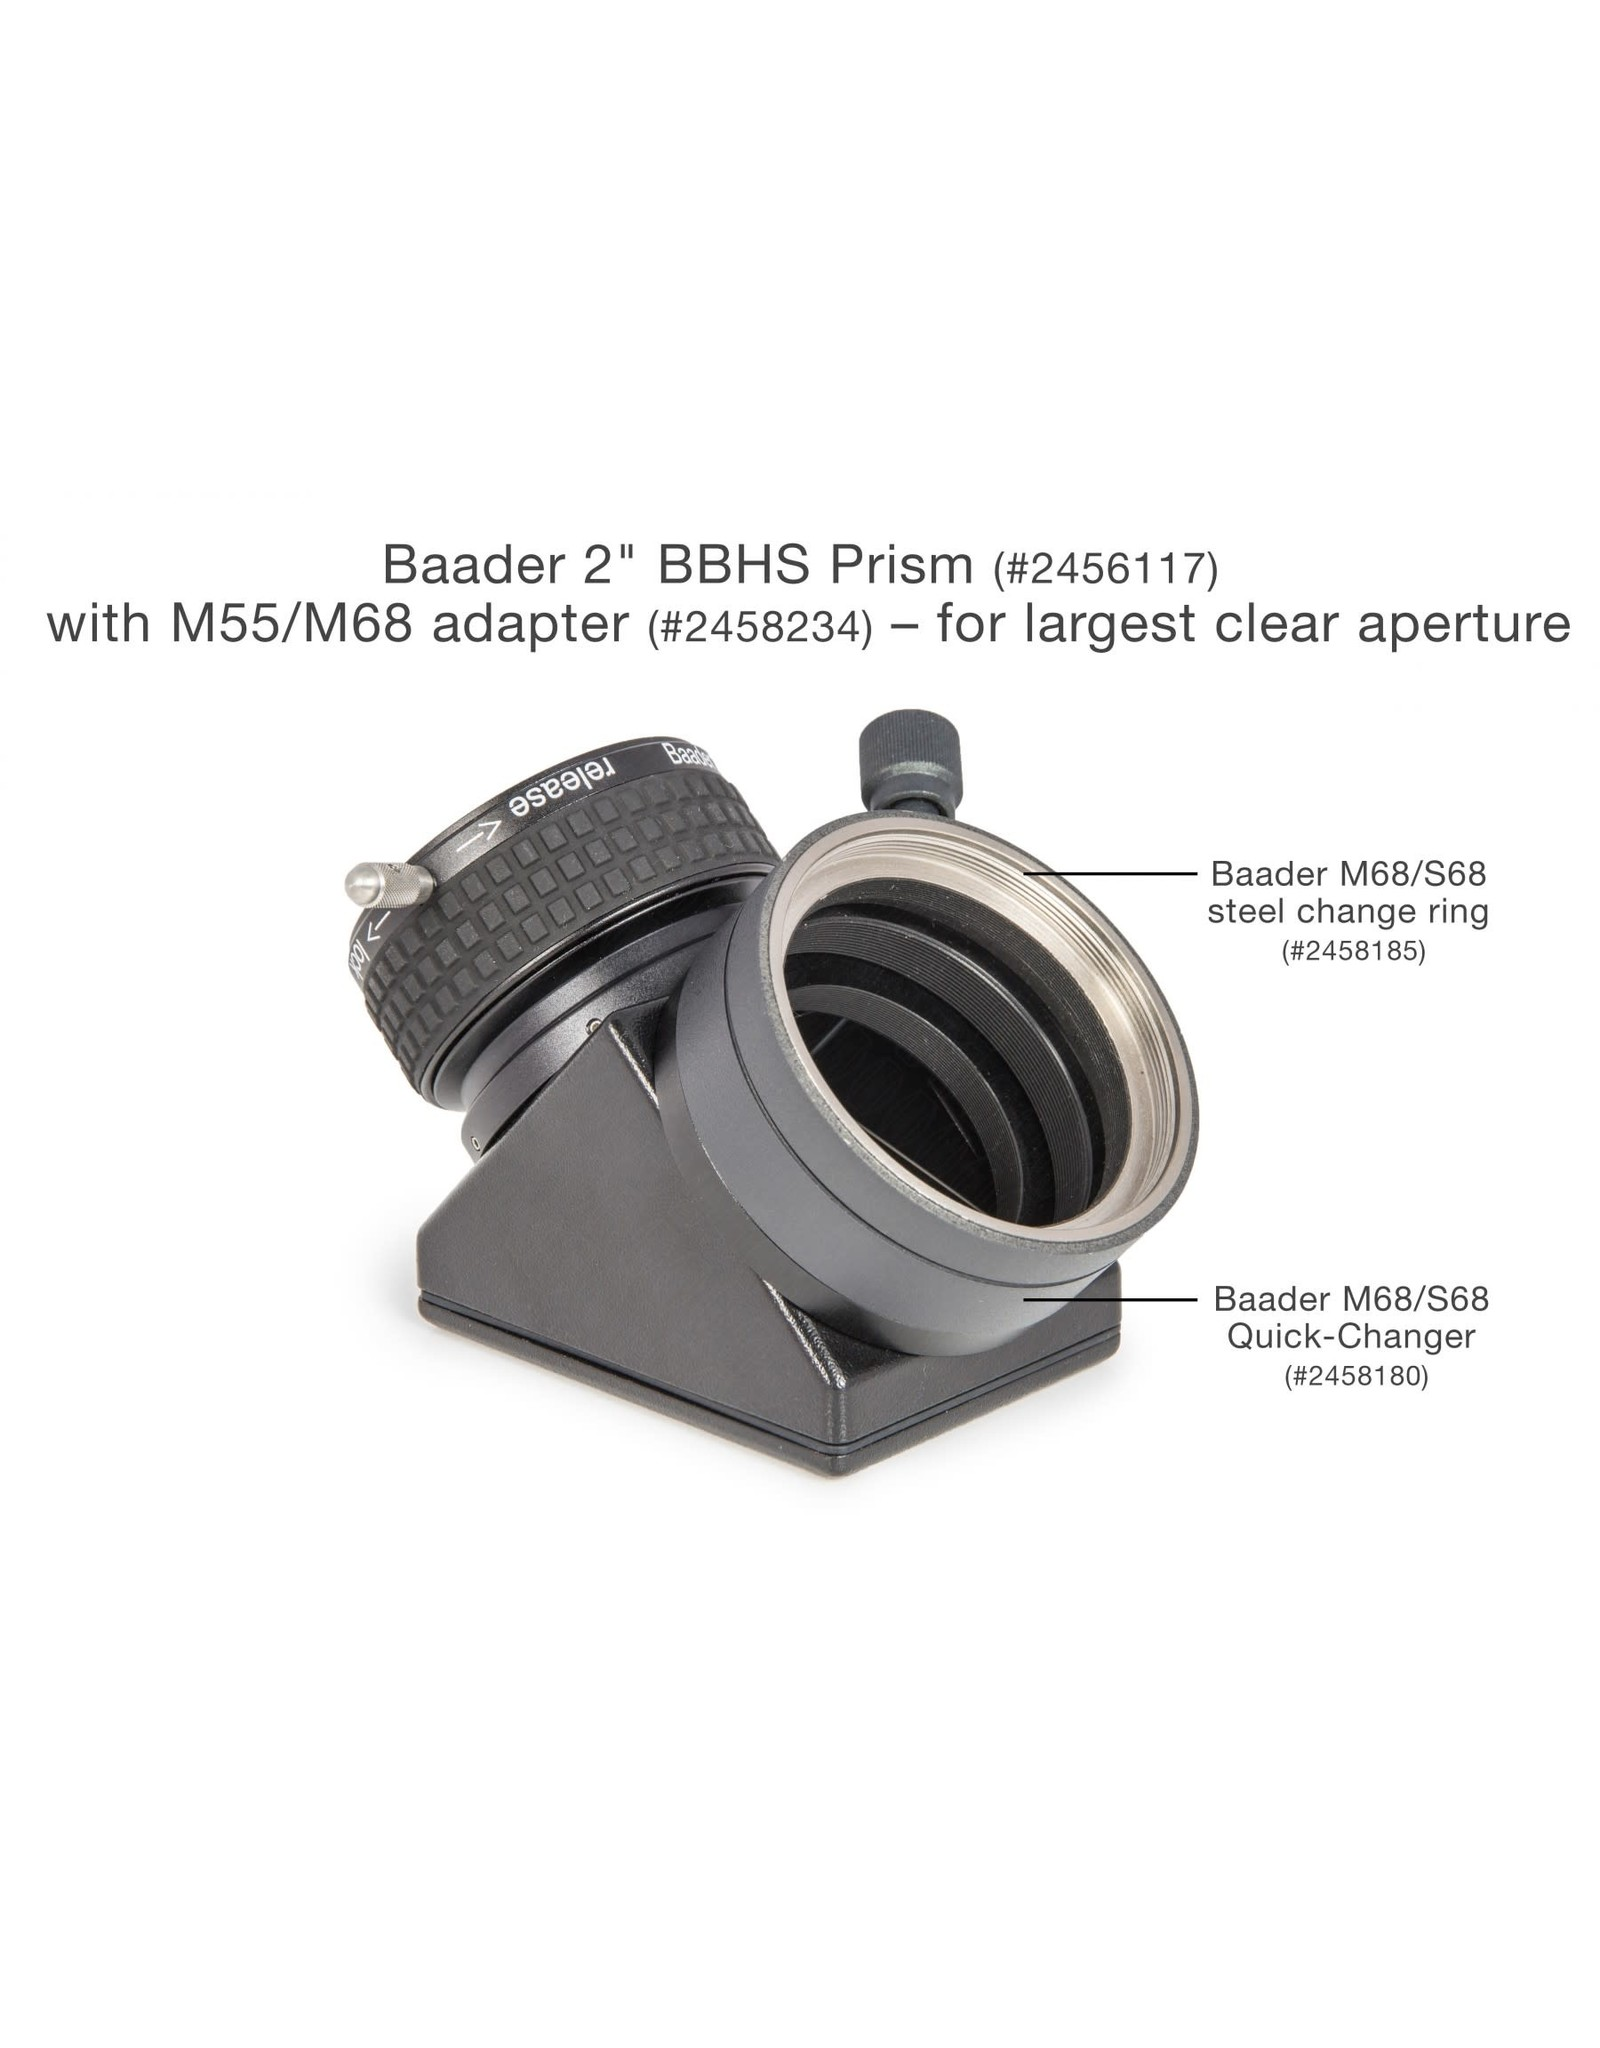 Baader Planetarium Baader M68/S68 Changer to fit Zeiss adapter system (dovetail clamp only)